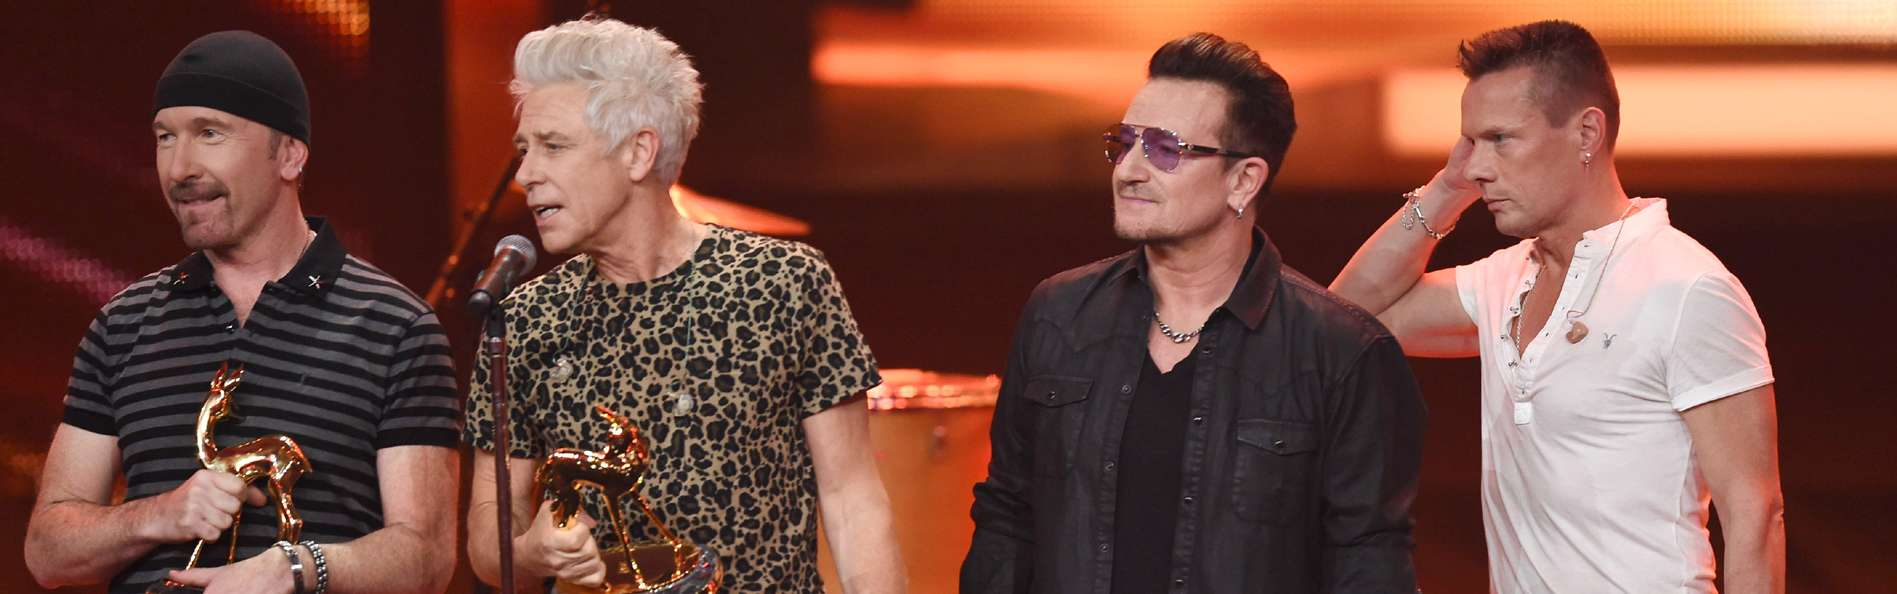 U2 Foto: Getty Images